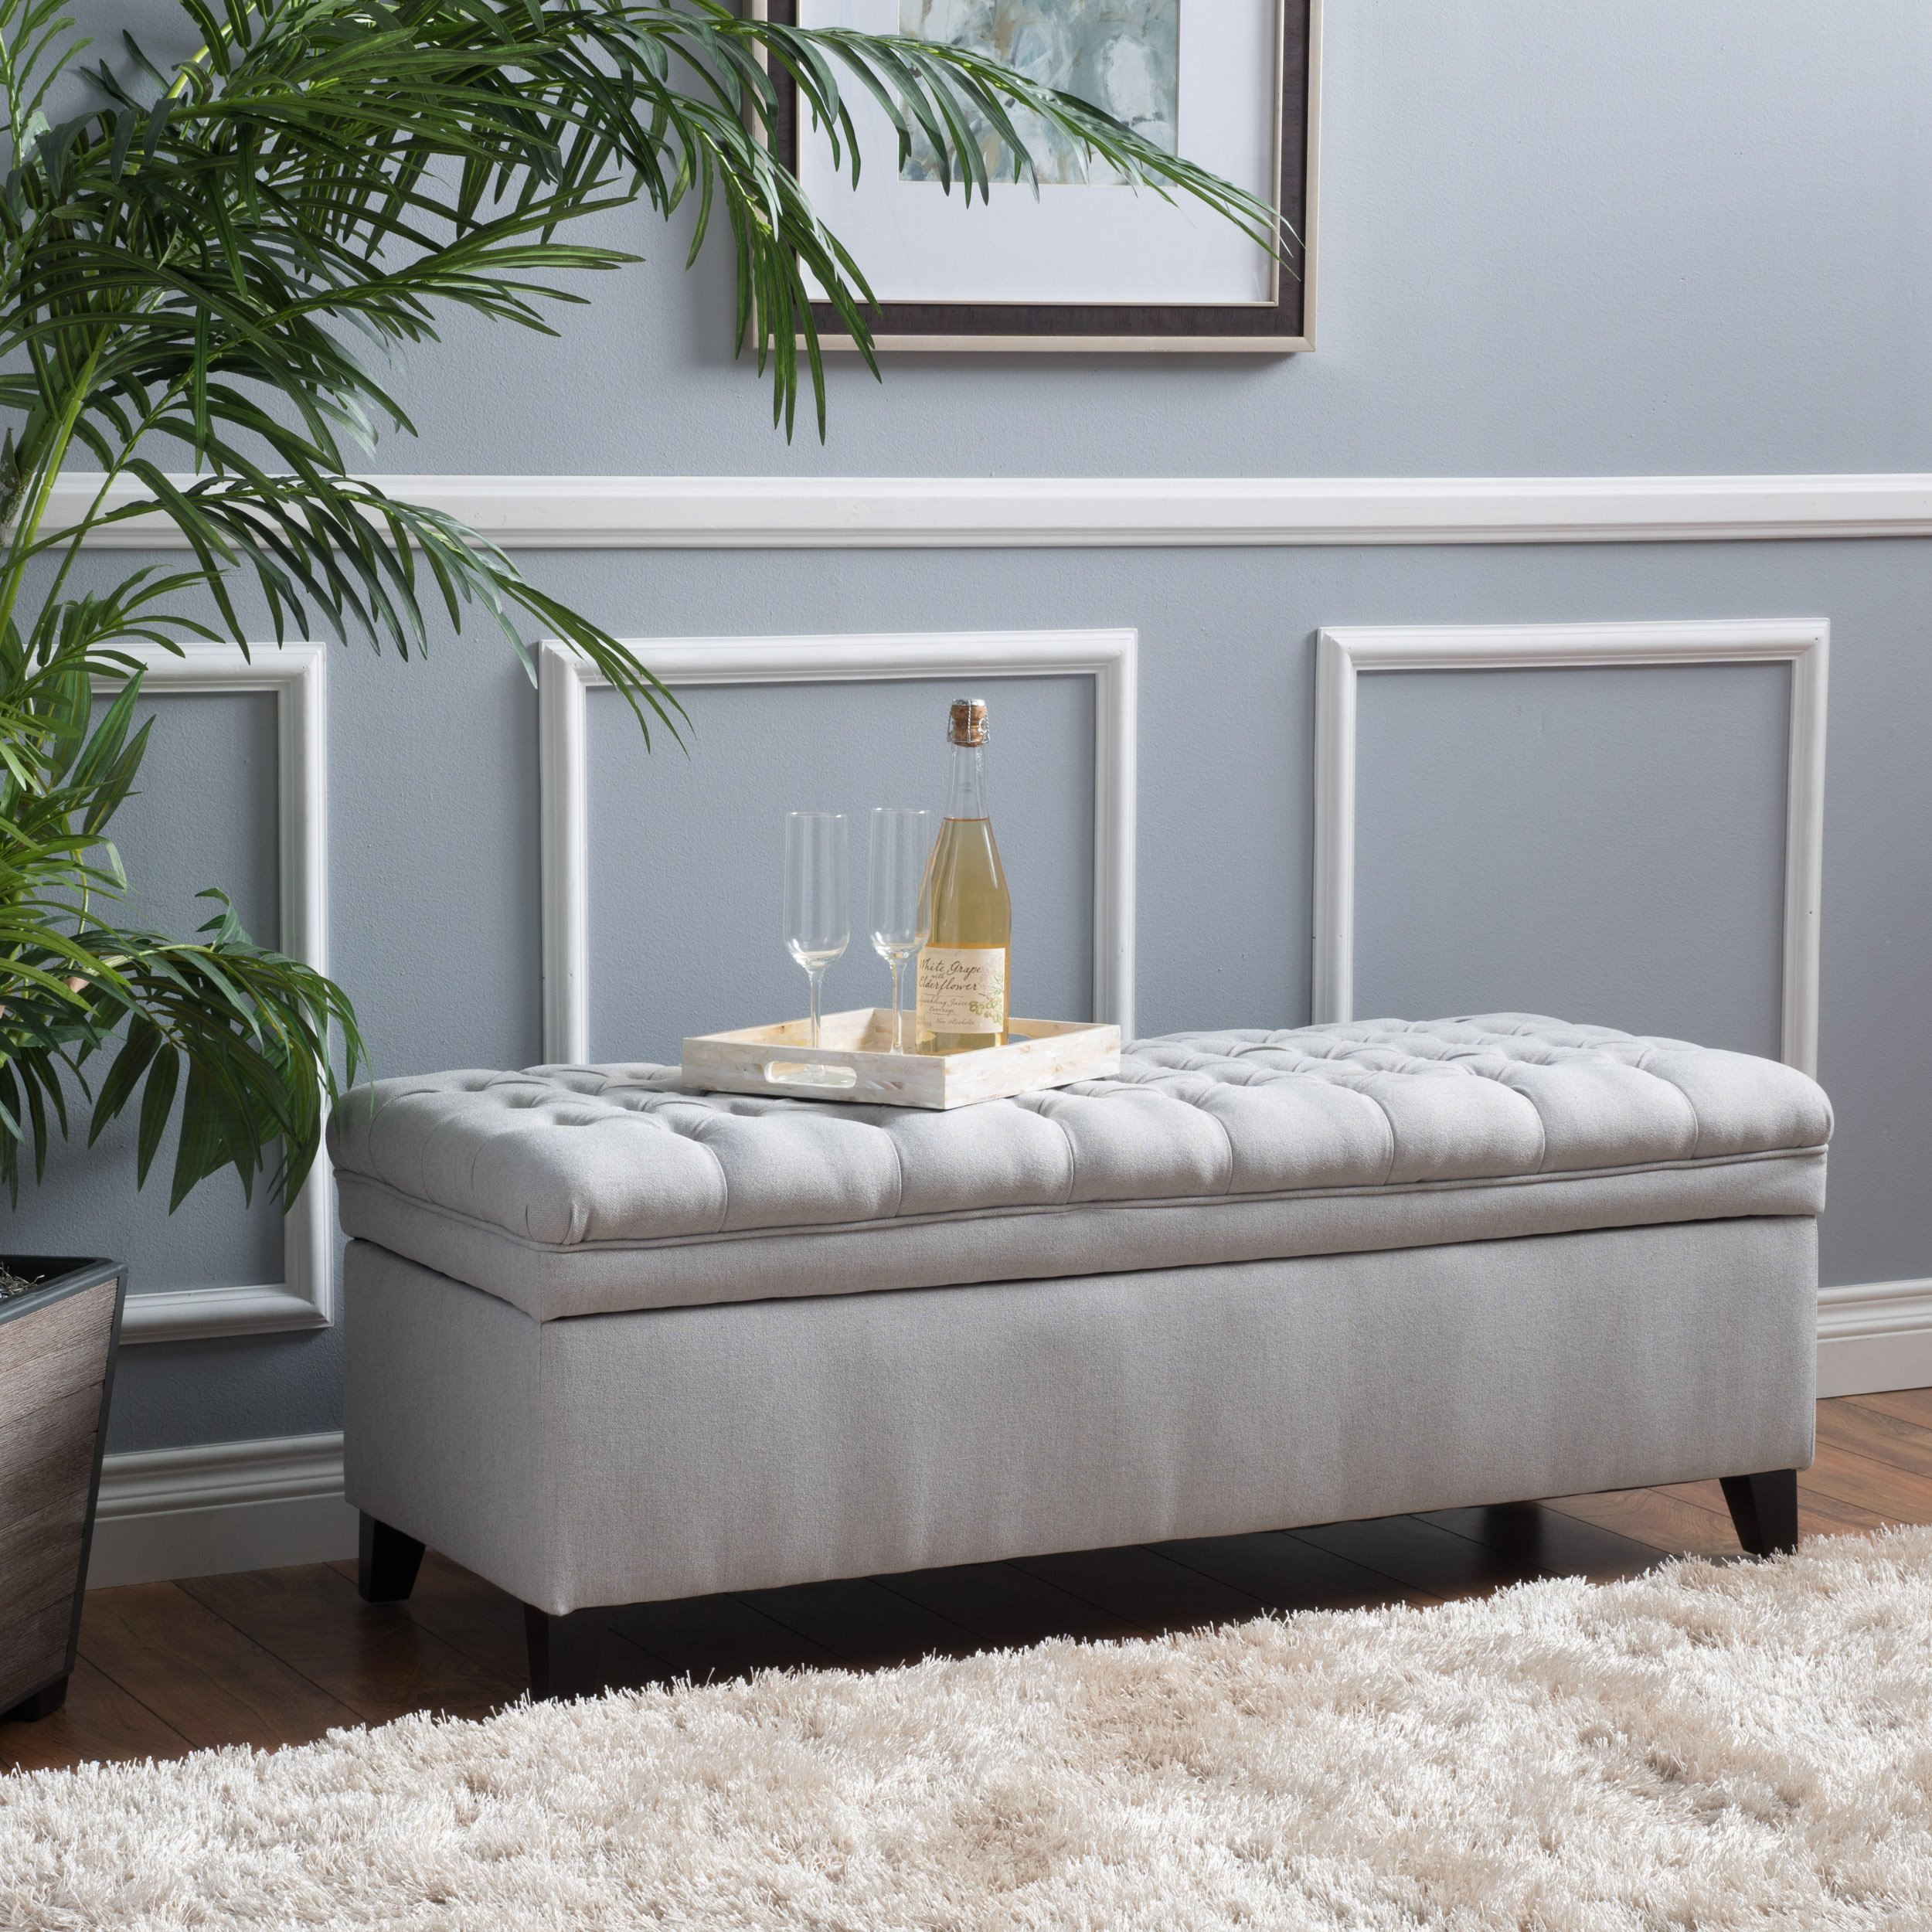 Christopher Knight Home 296870 Laguna Tufted Fabric Storage Ottoman, Light Grey by Christopher Knight Home